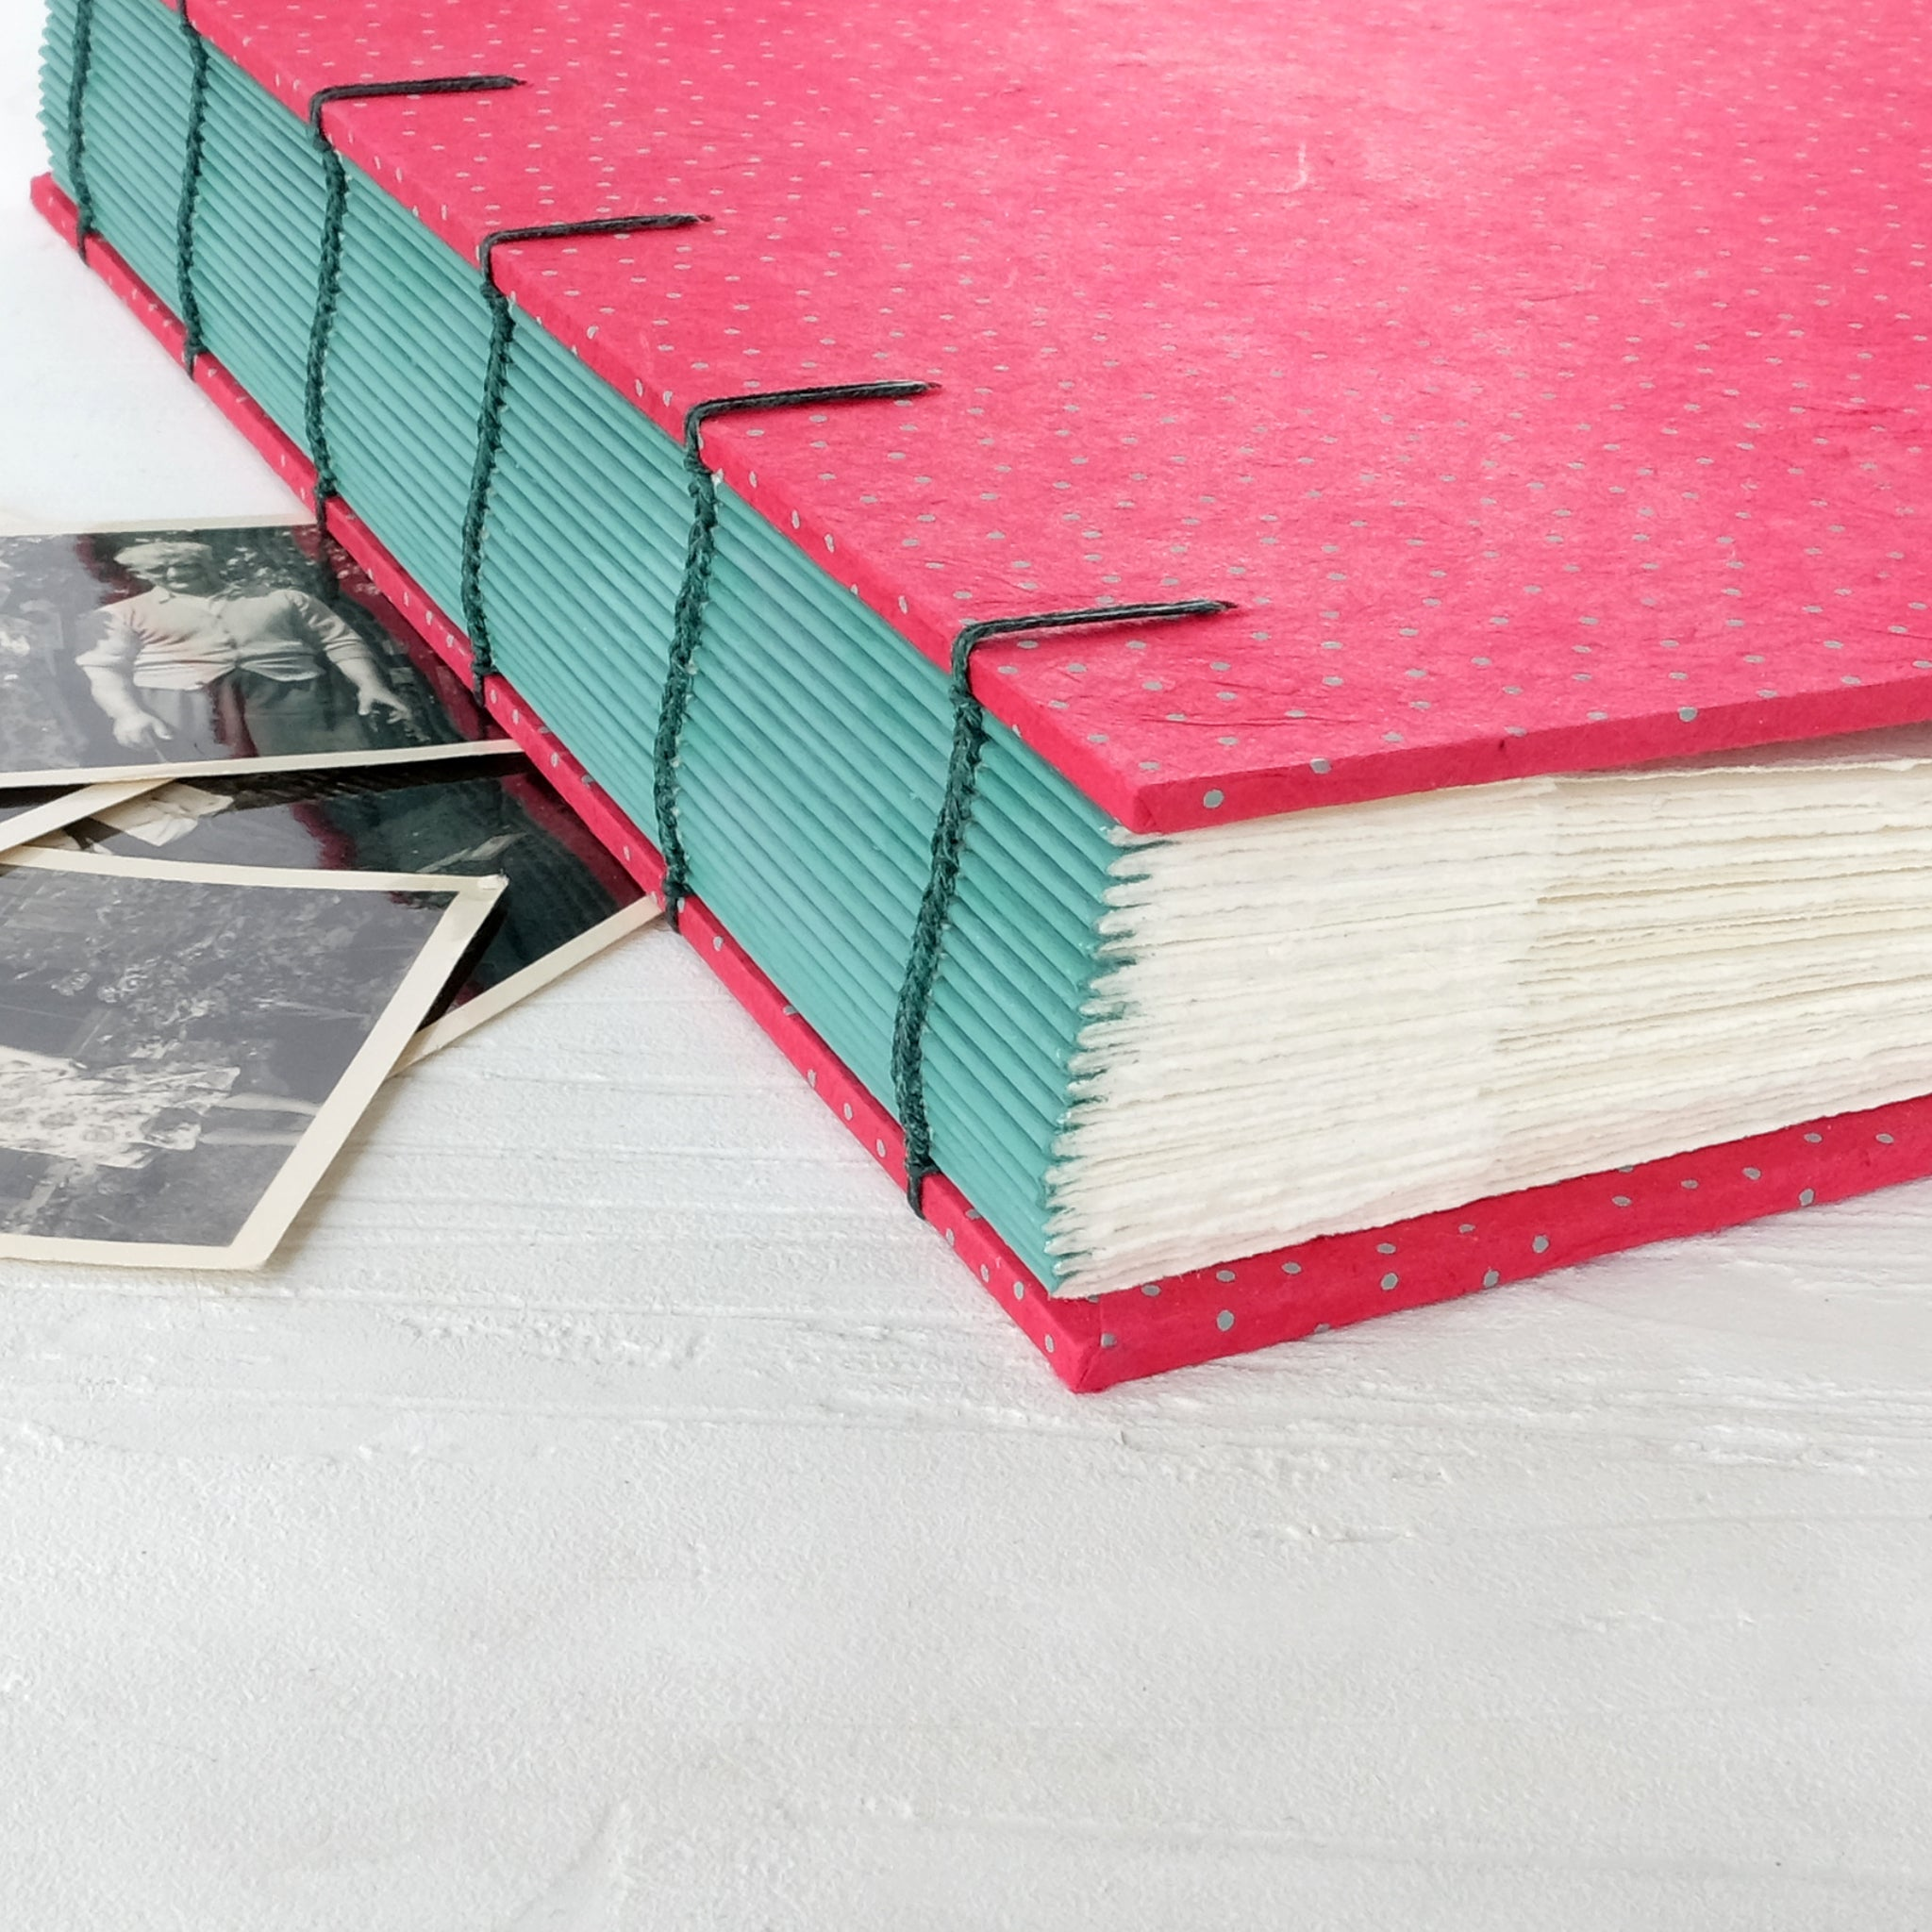 speckled pink-coptic album-hand sewn-handmade books-the idle bindery